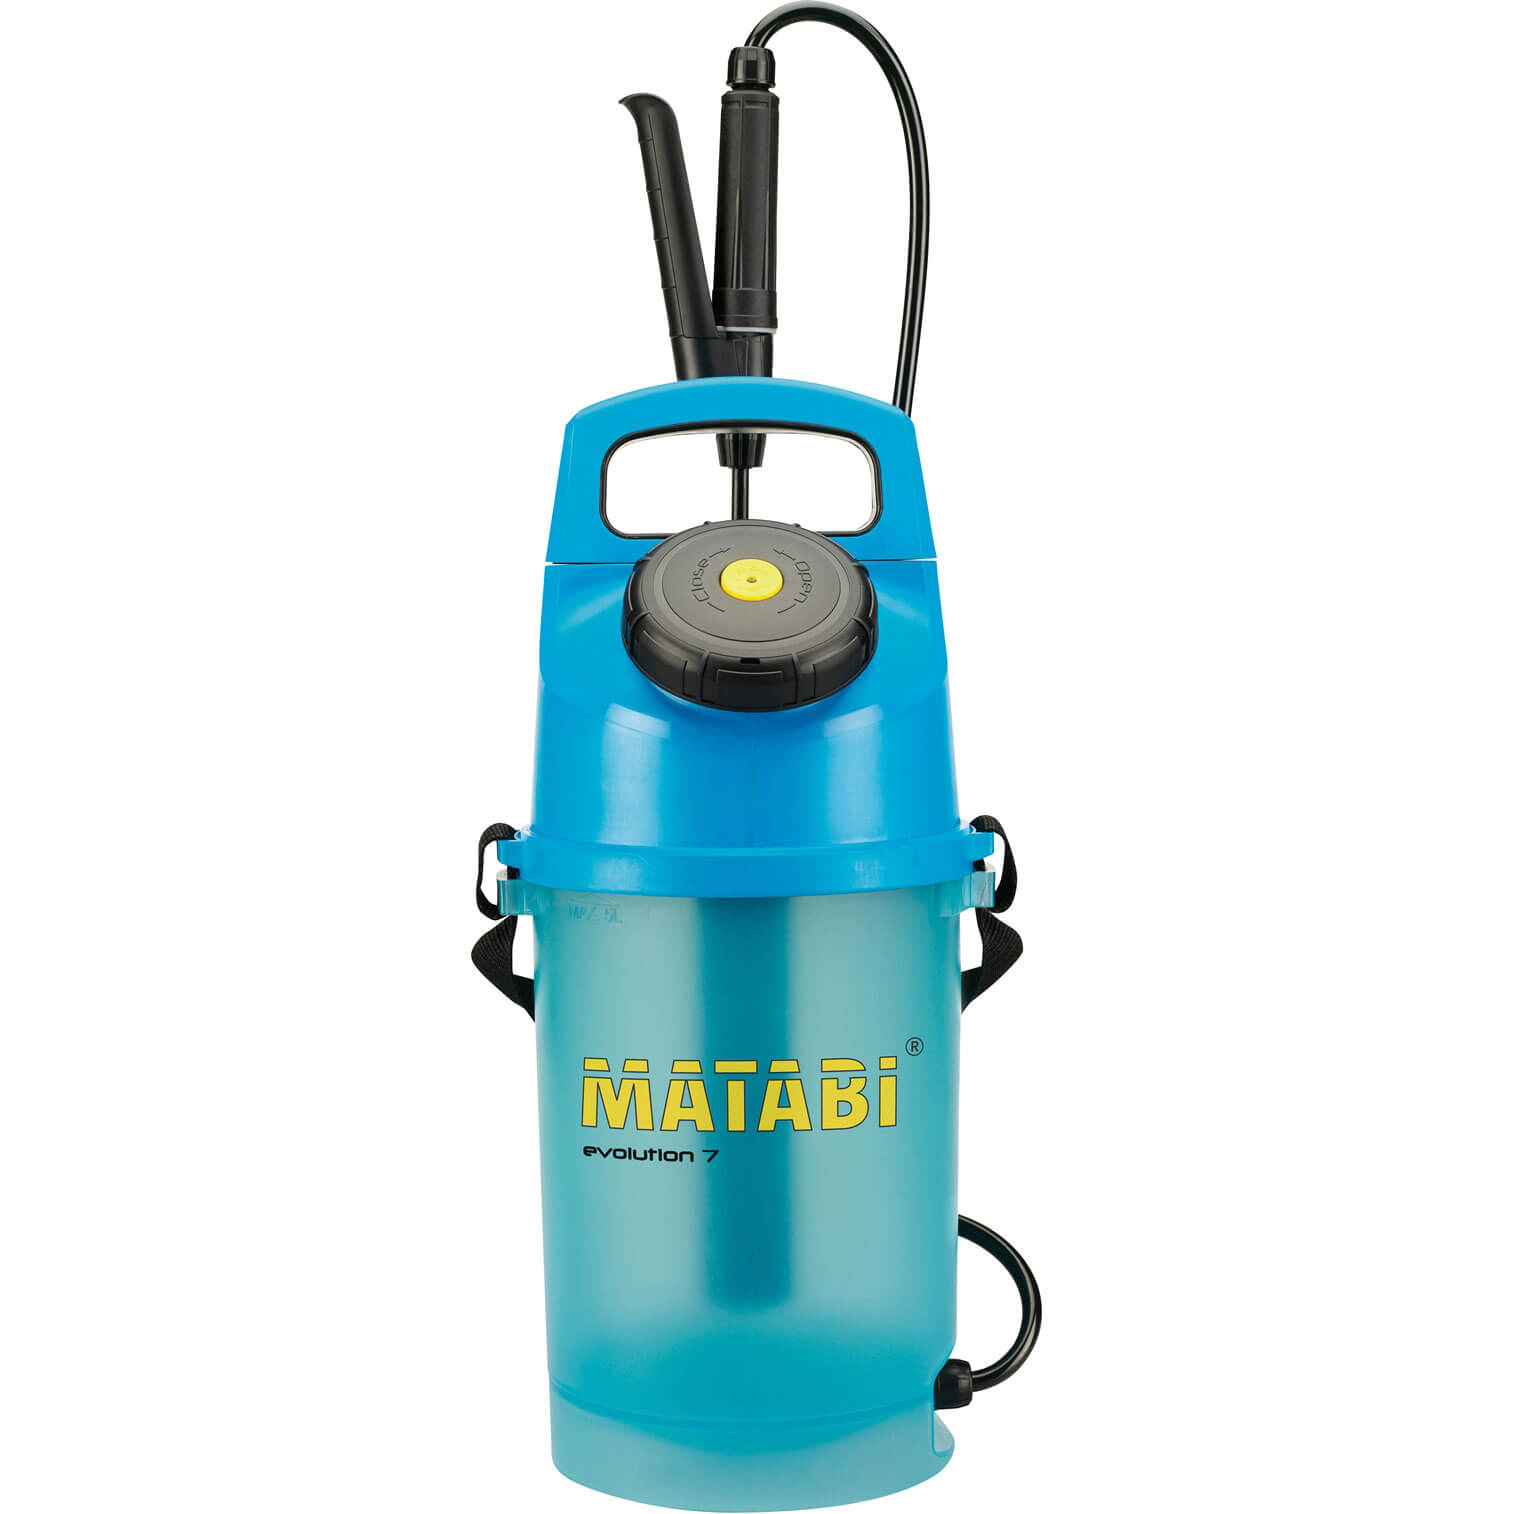 Image of Matabi Evolution 7 Pressure Water Sprayer 7l